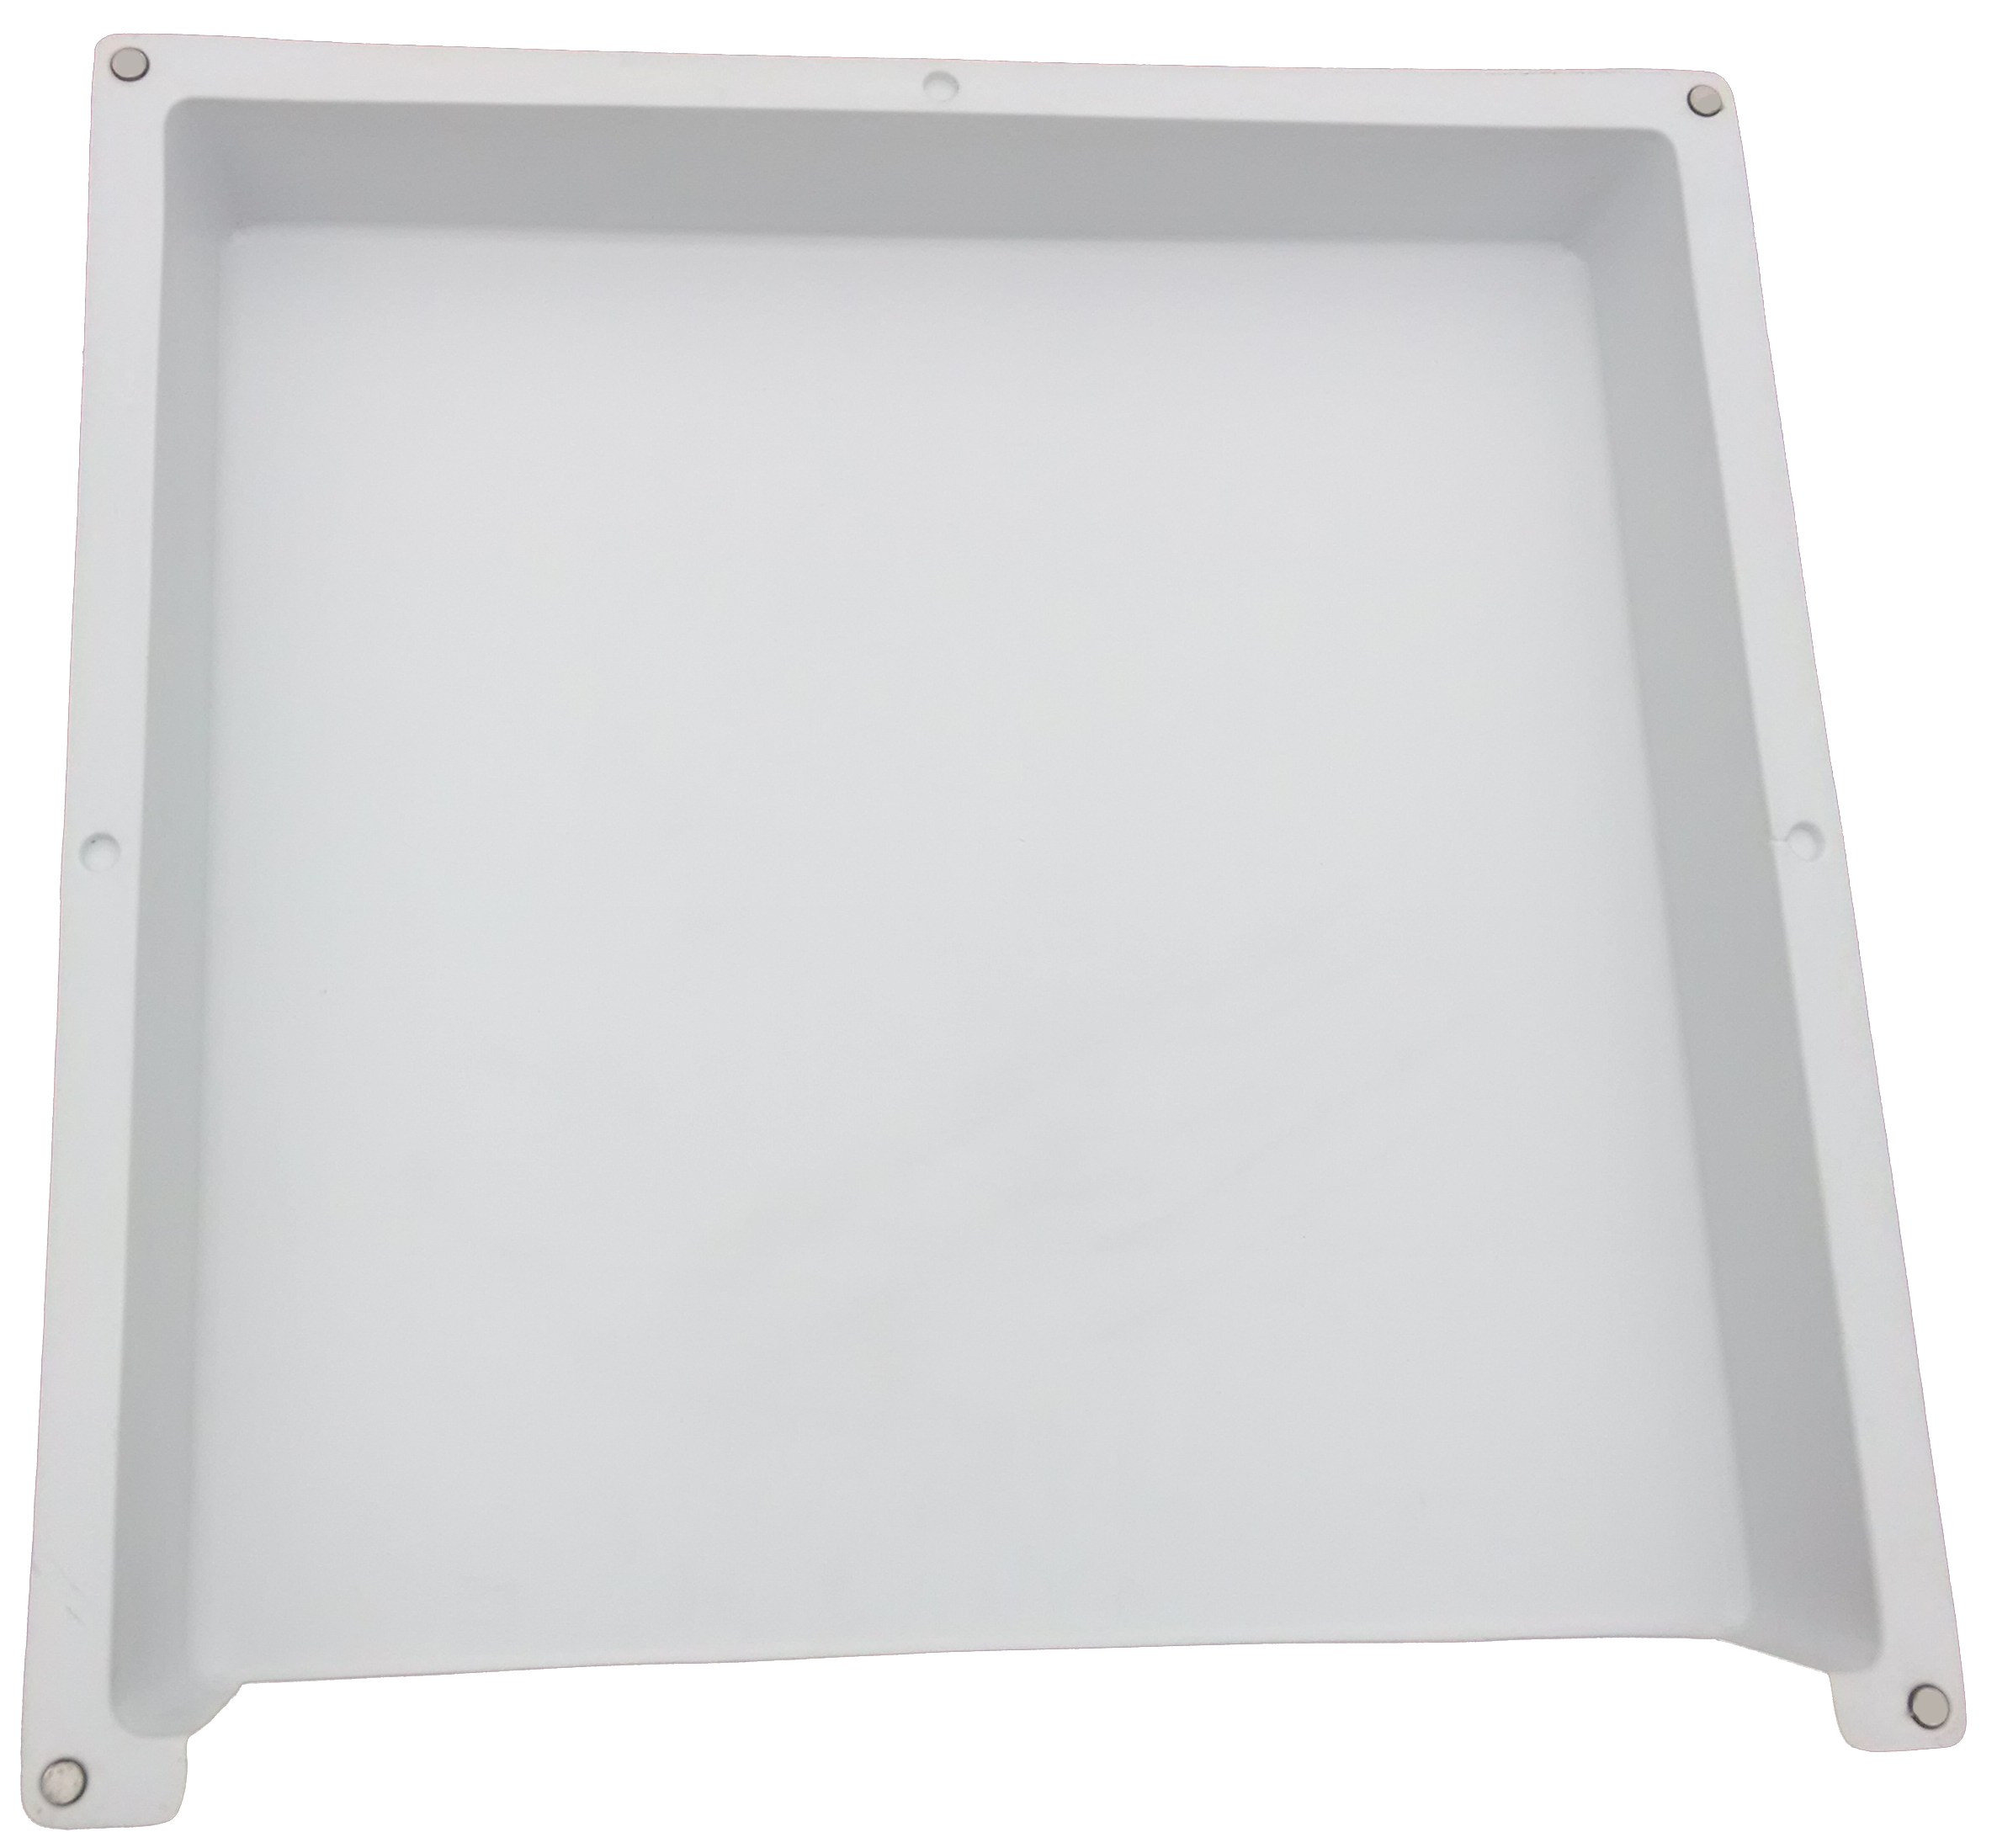 br deflector attached covers pc ceiling vent dust air filter deflectors htm products w ceilings